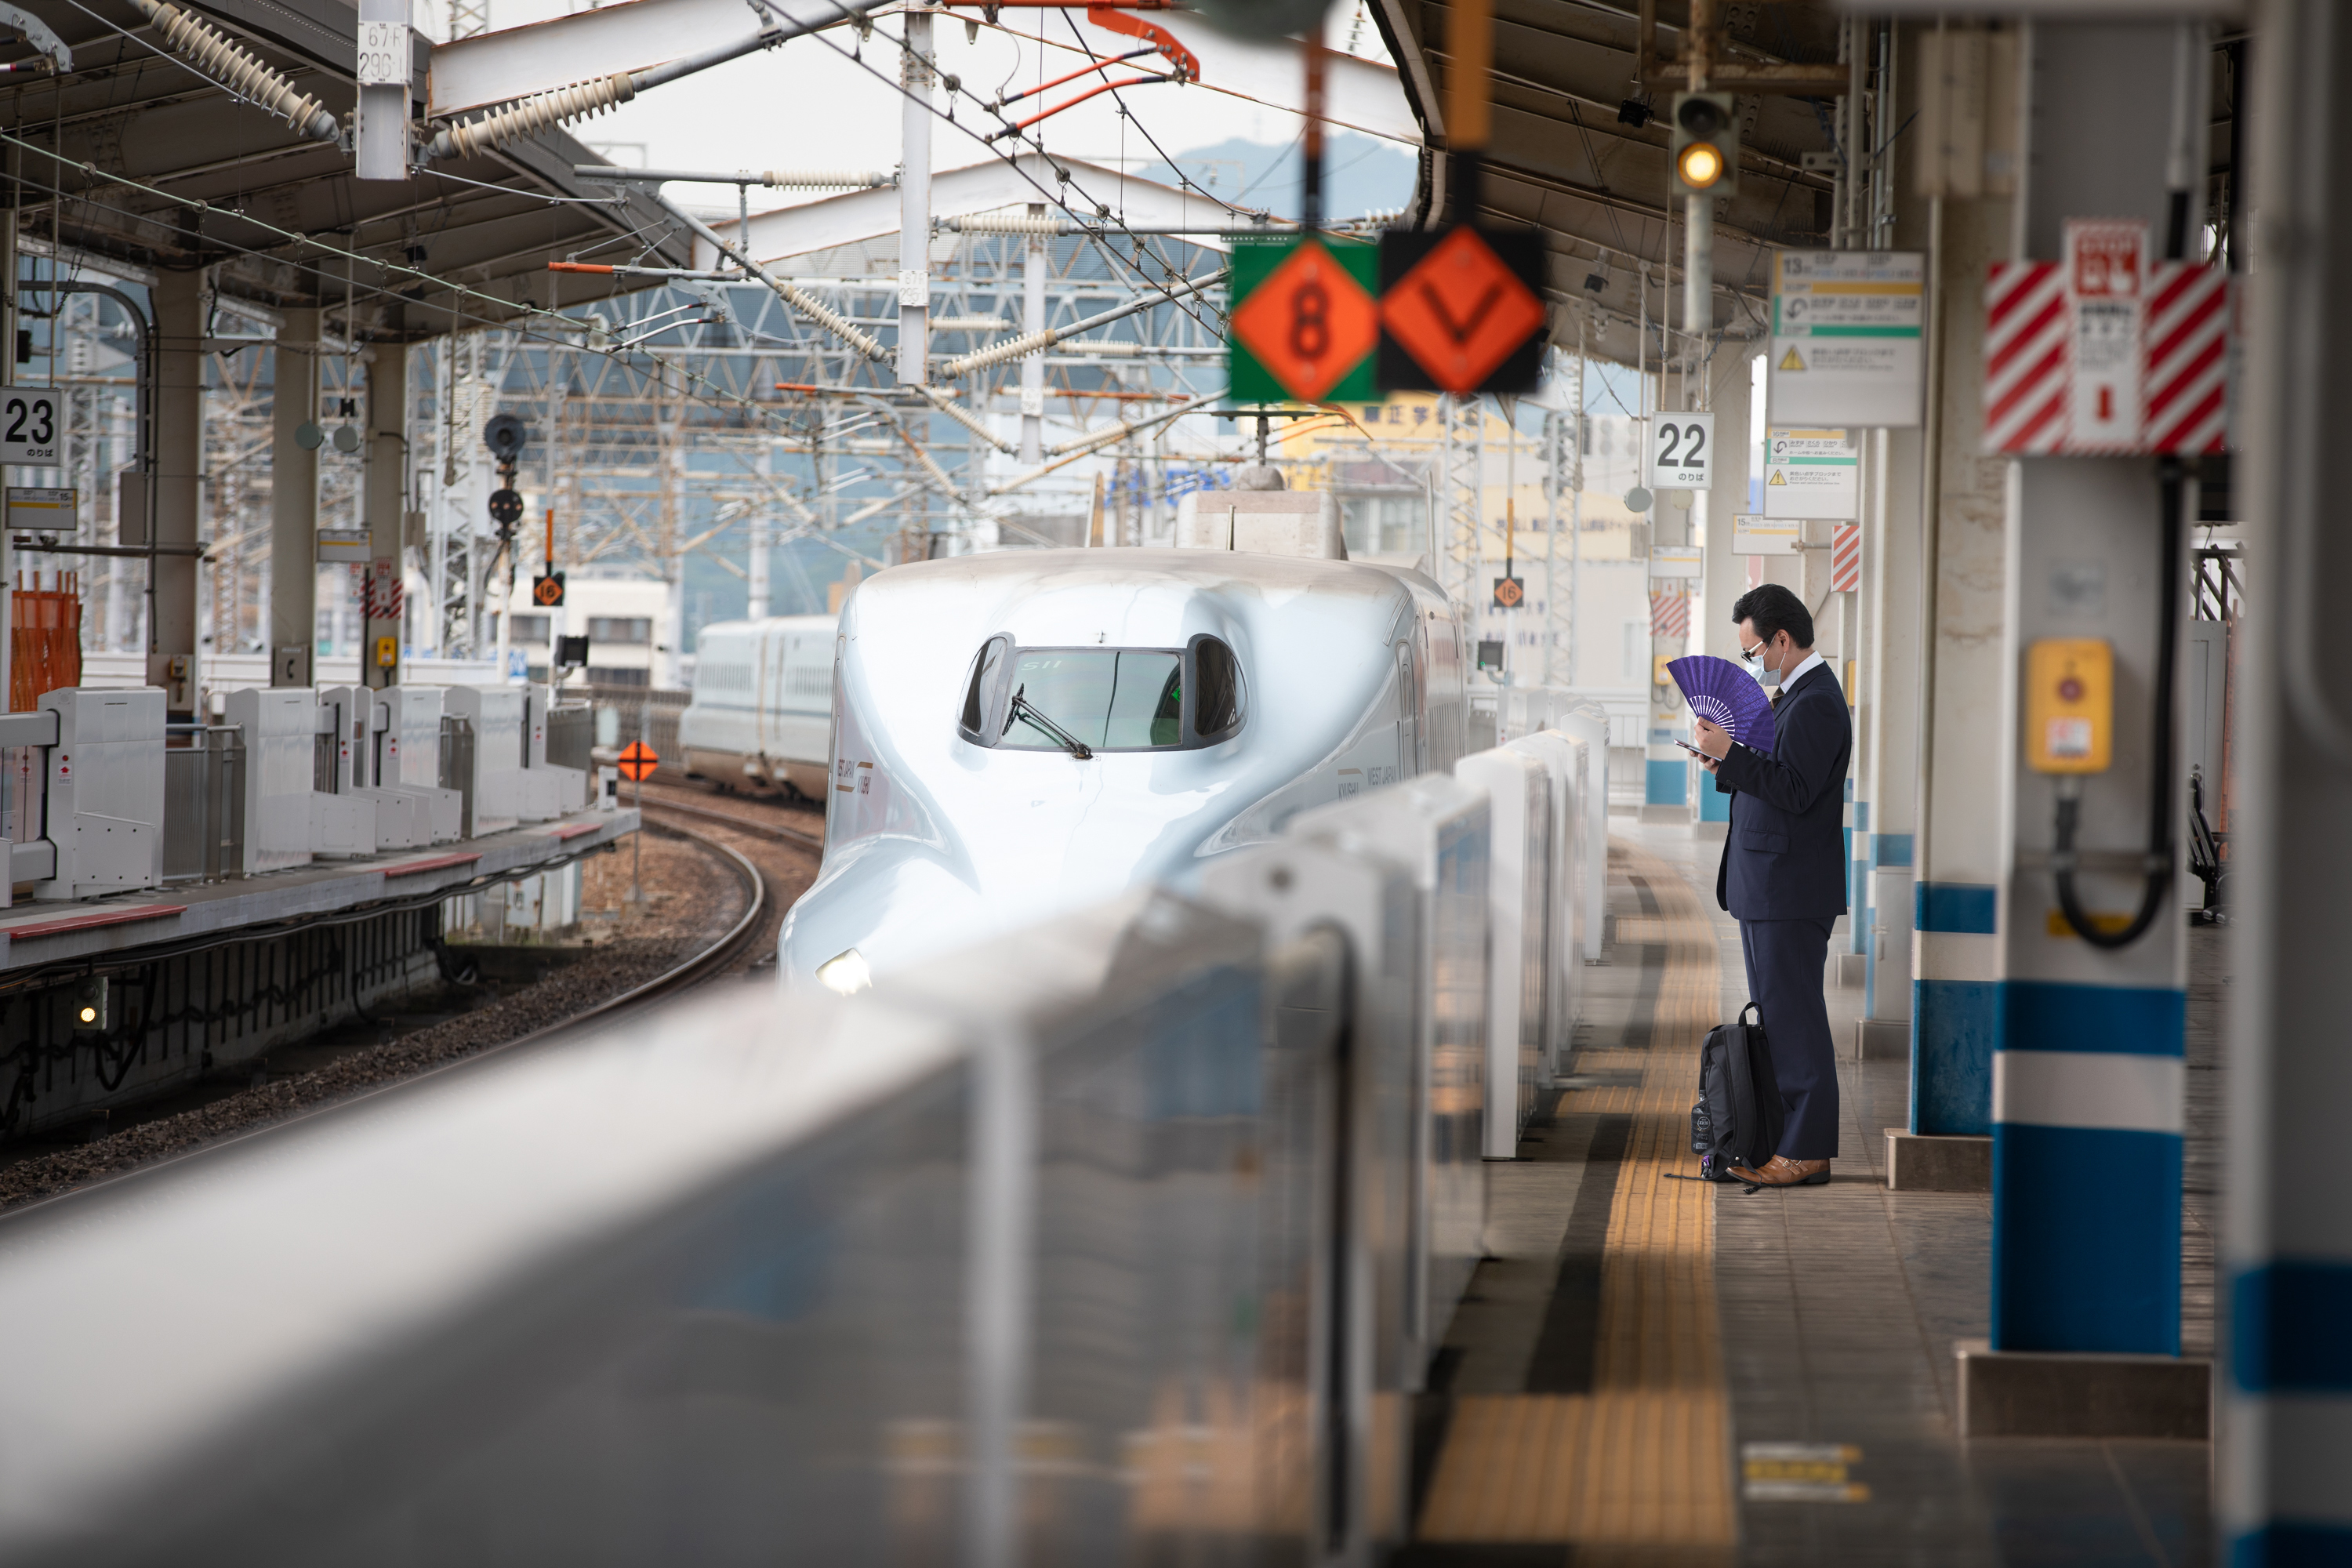 Tokyo's busy Shinjuku shopping district emptied in May as store owners and customers voluntarily turned to social distancing. Japan's popular bullet train was also almost deserted in May. (Saša Petricic/CBC)